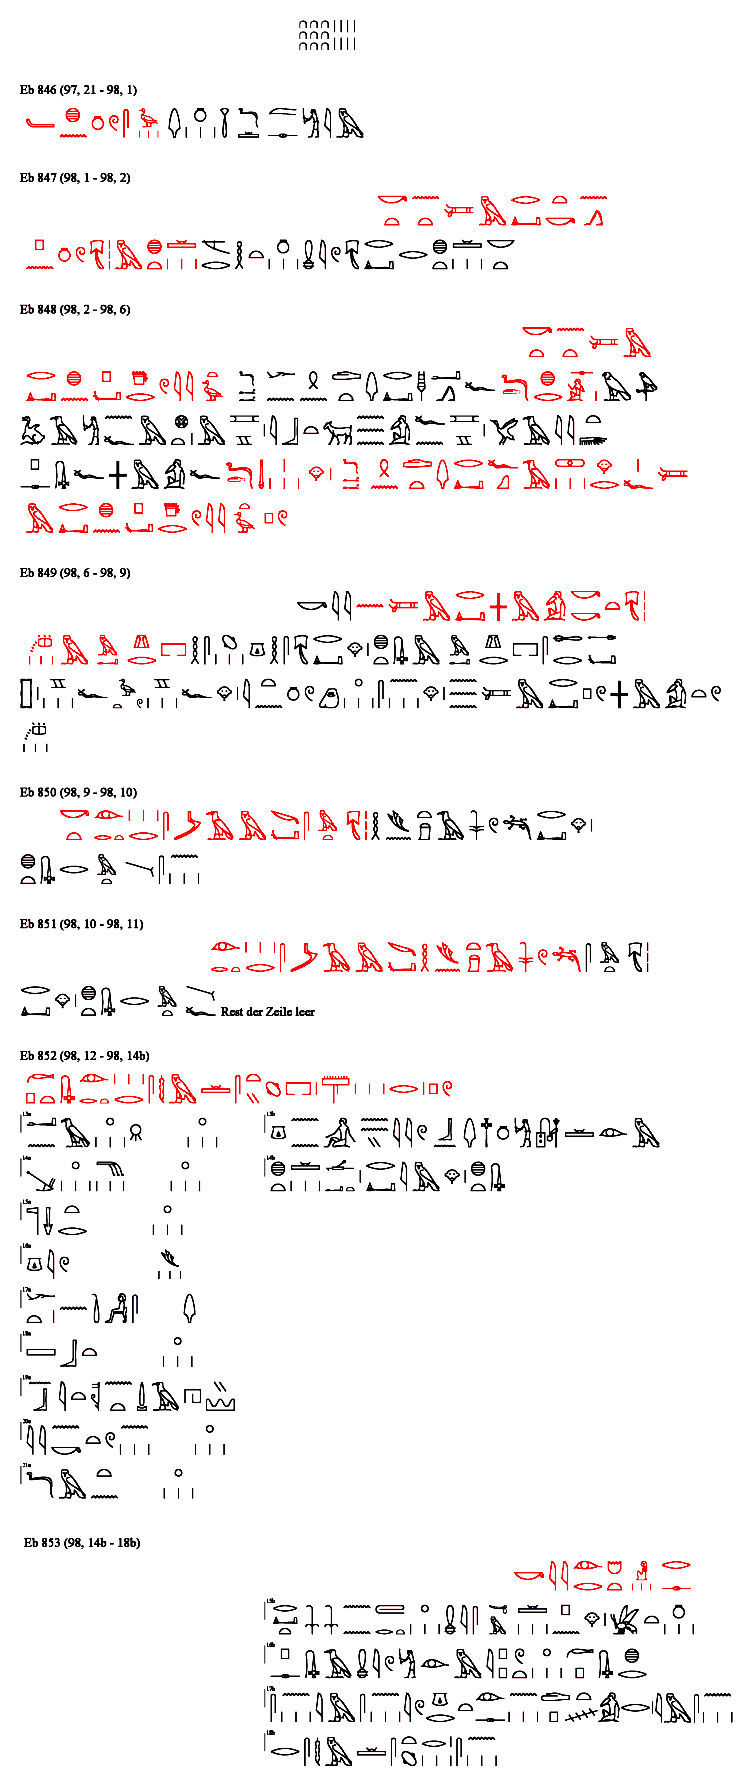 Papyrus Ebers, Hieroglyph Transliteration of Column 098 with the first part of the Kyphi Recipe.